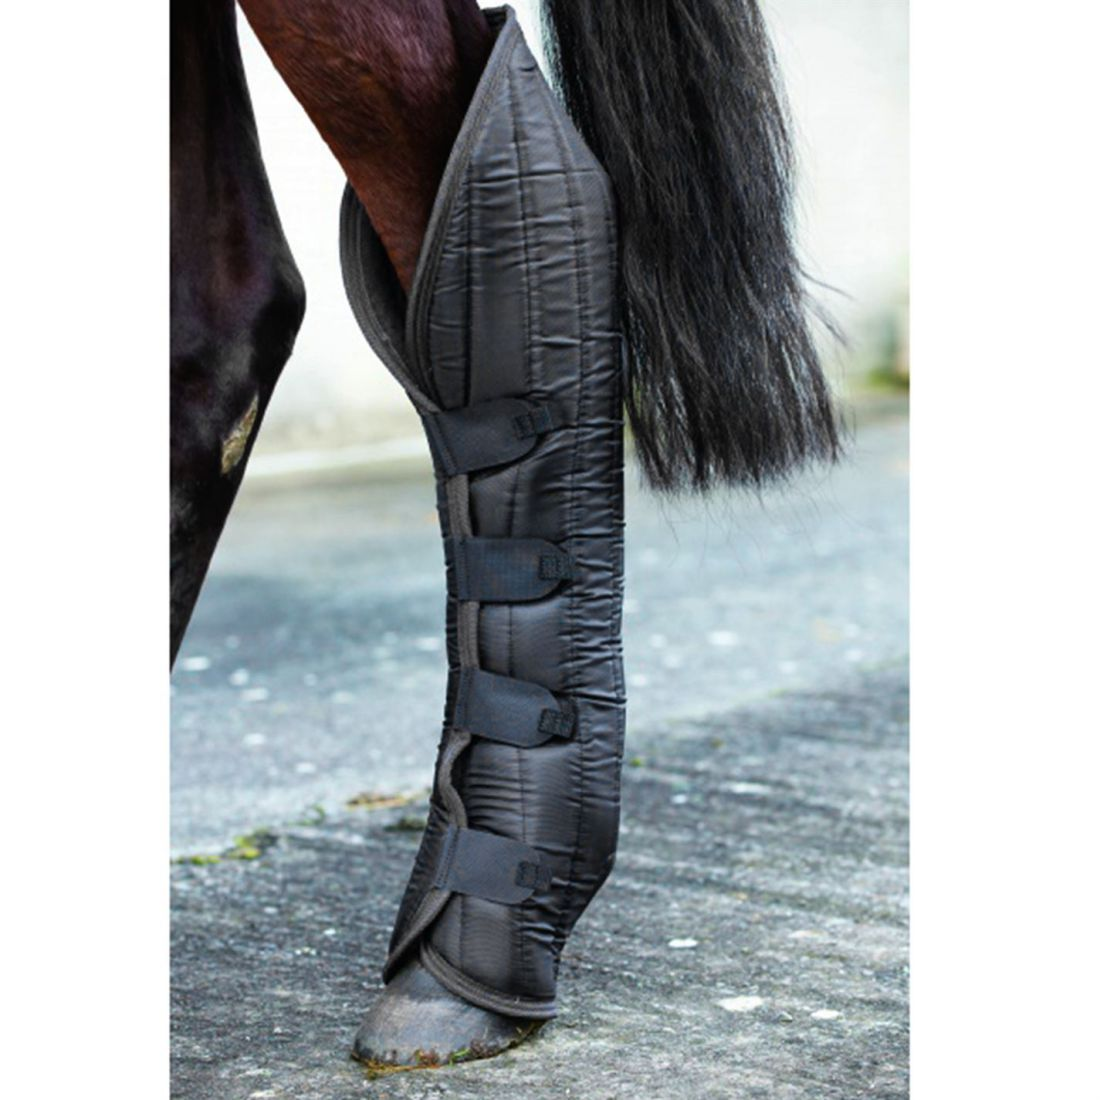 Mio Travel Boots Unisex Horse Legwear Water Resistant Quilted